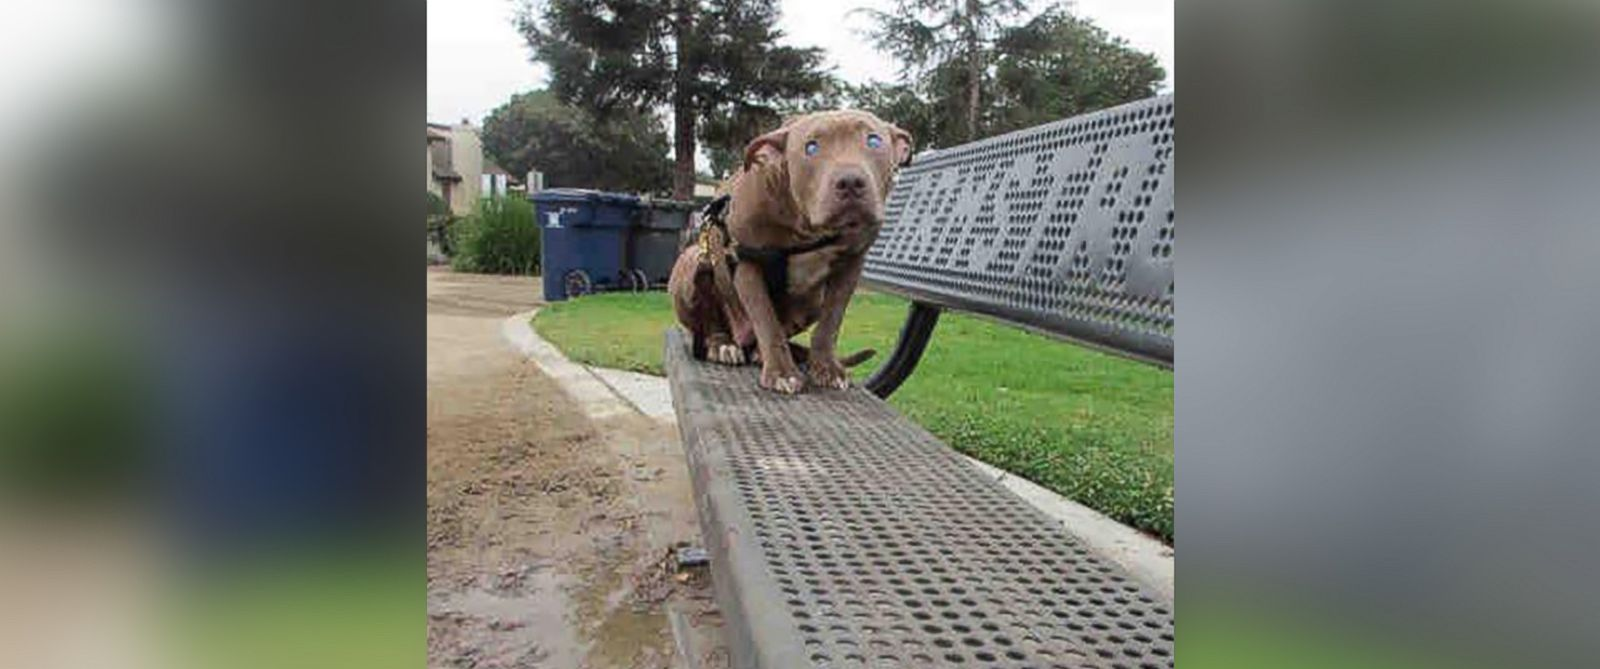 PHOTO: Poly, who is blind, has found love in a foster home after being abandoned on park bench.